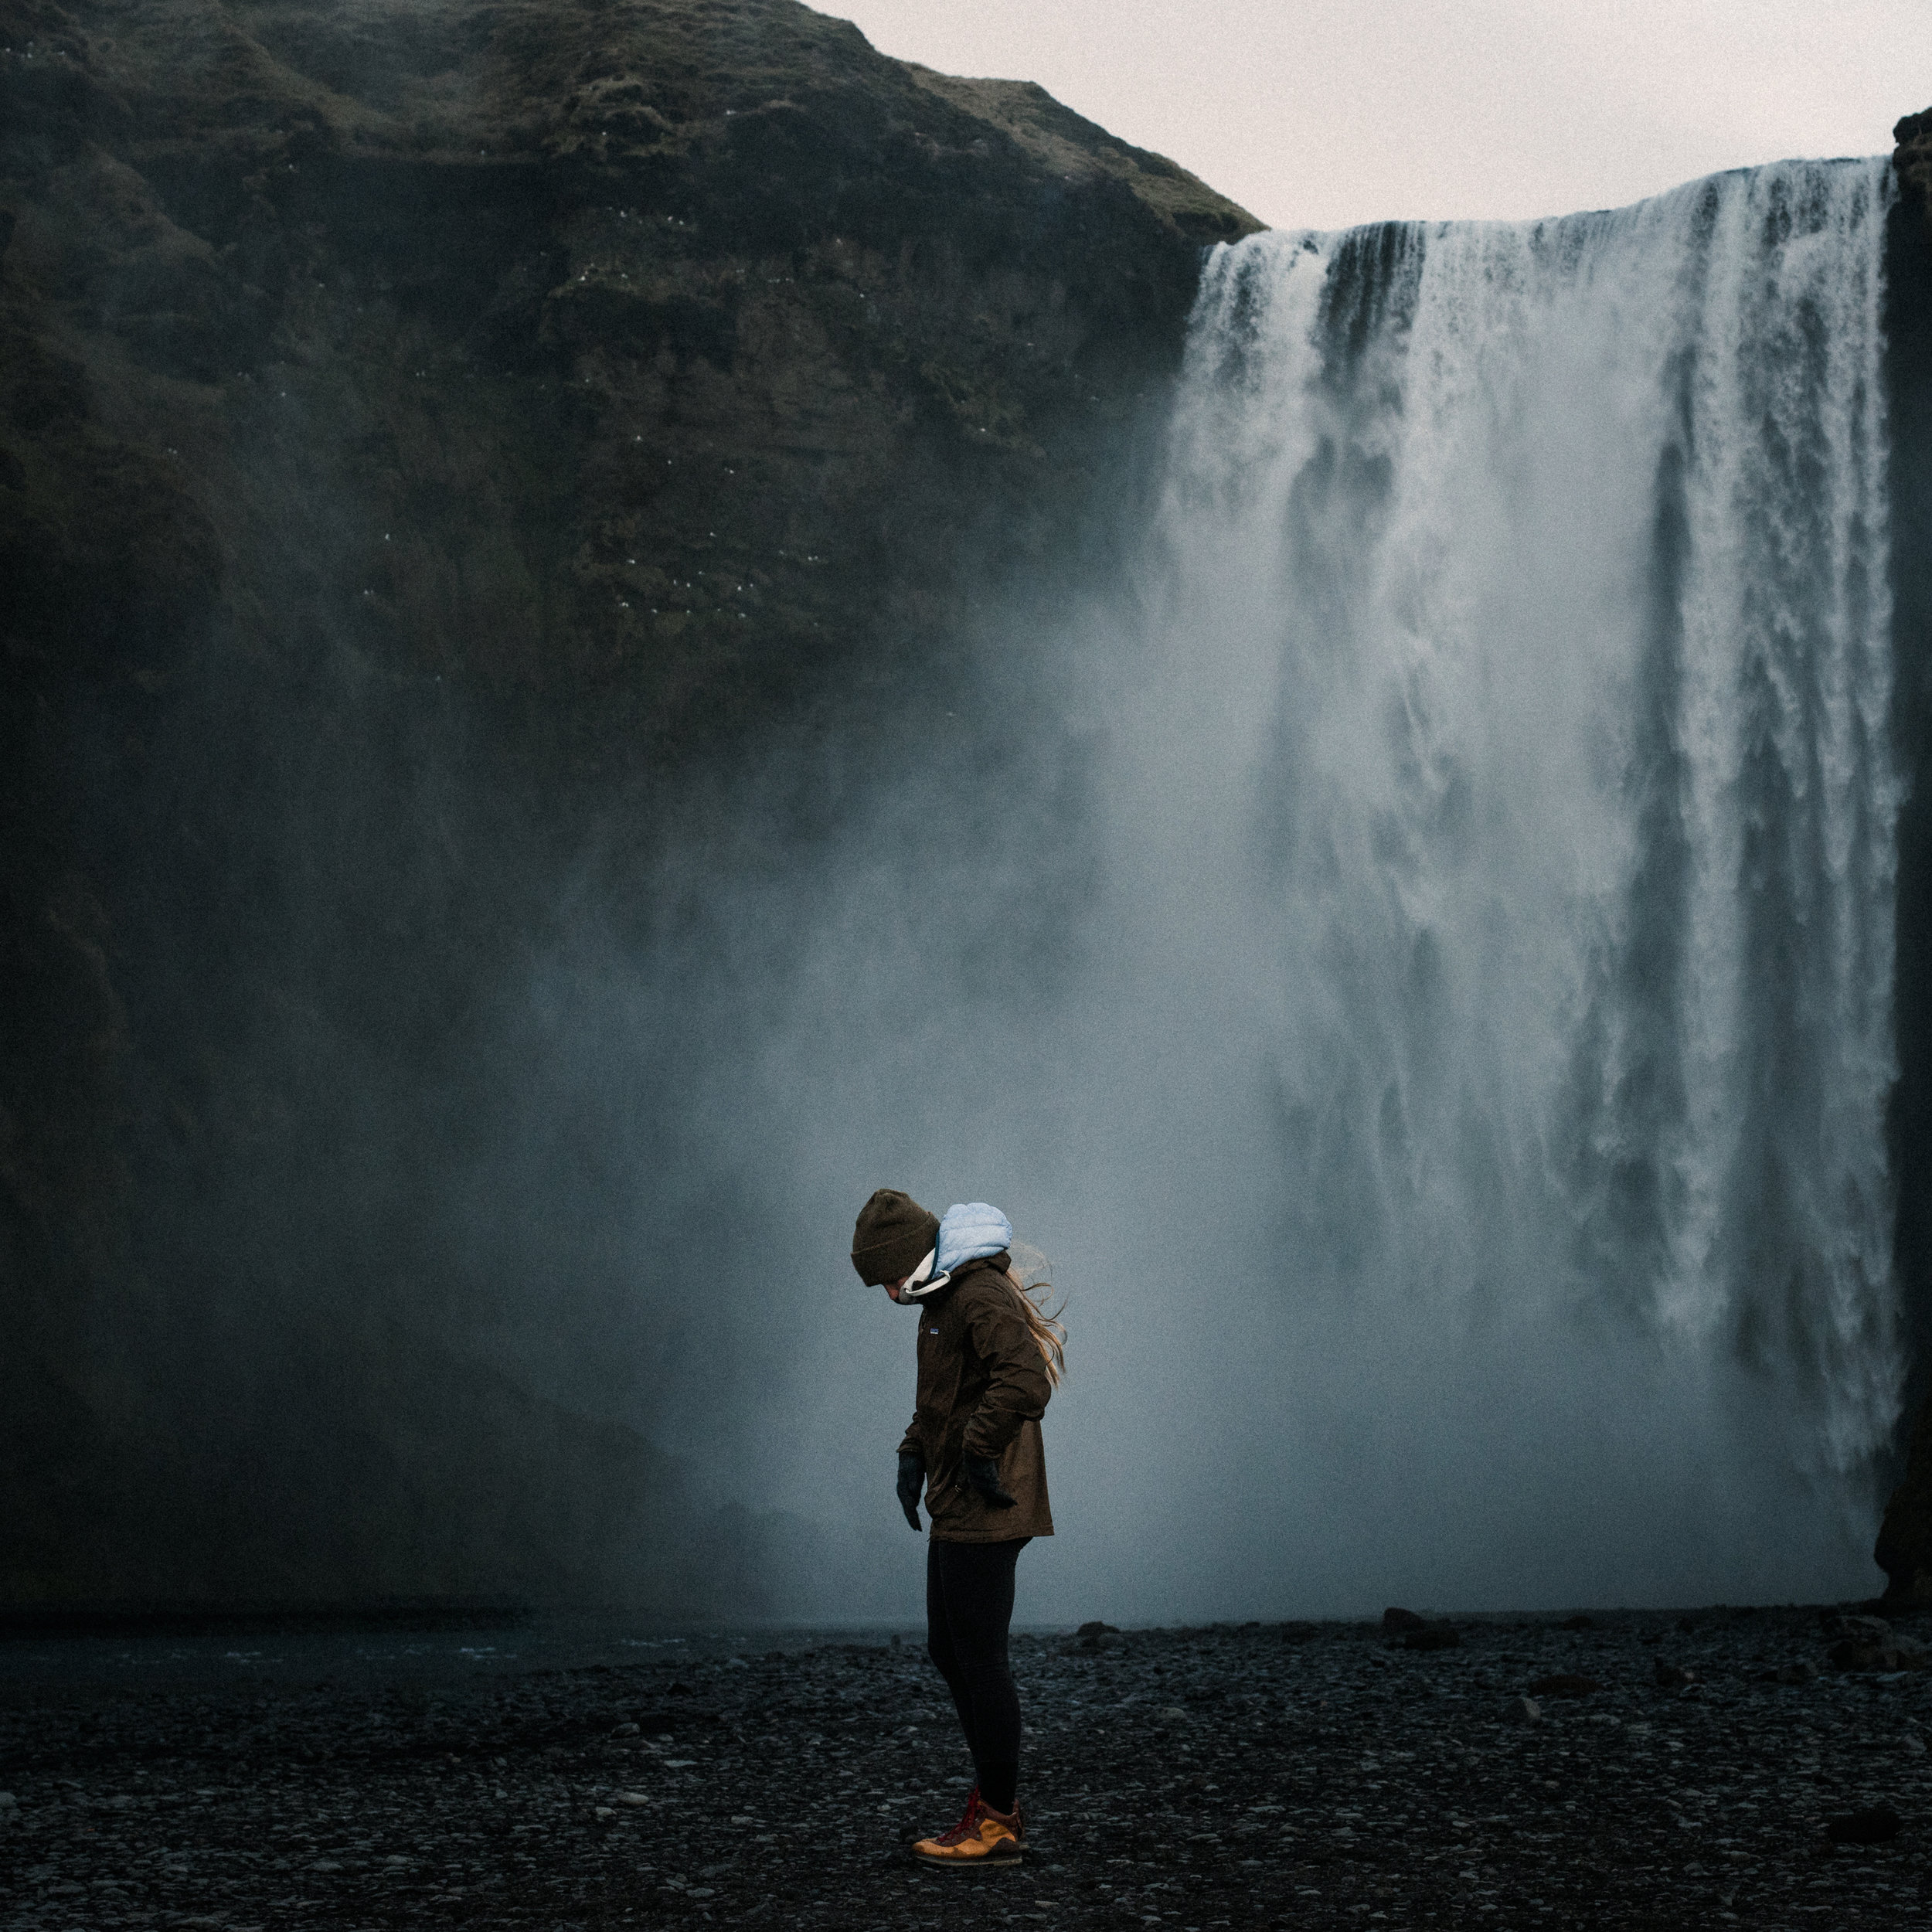 ICELAND_WOMAN_PHOTOGRAPHER_TARASHUPE_OUTDOOR_PHOTOGRAPHY_052.jpg